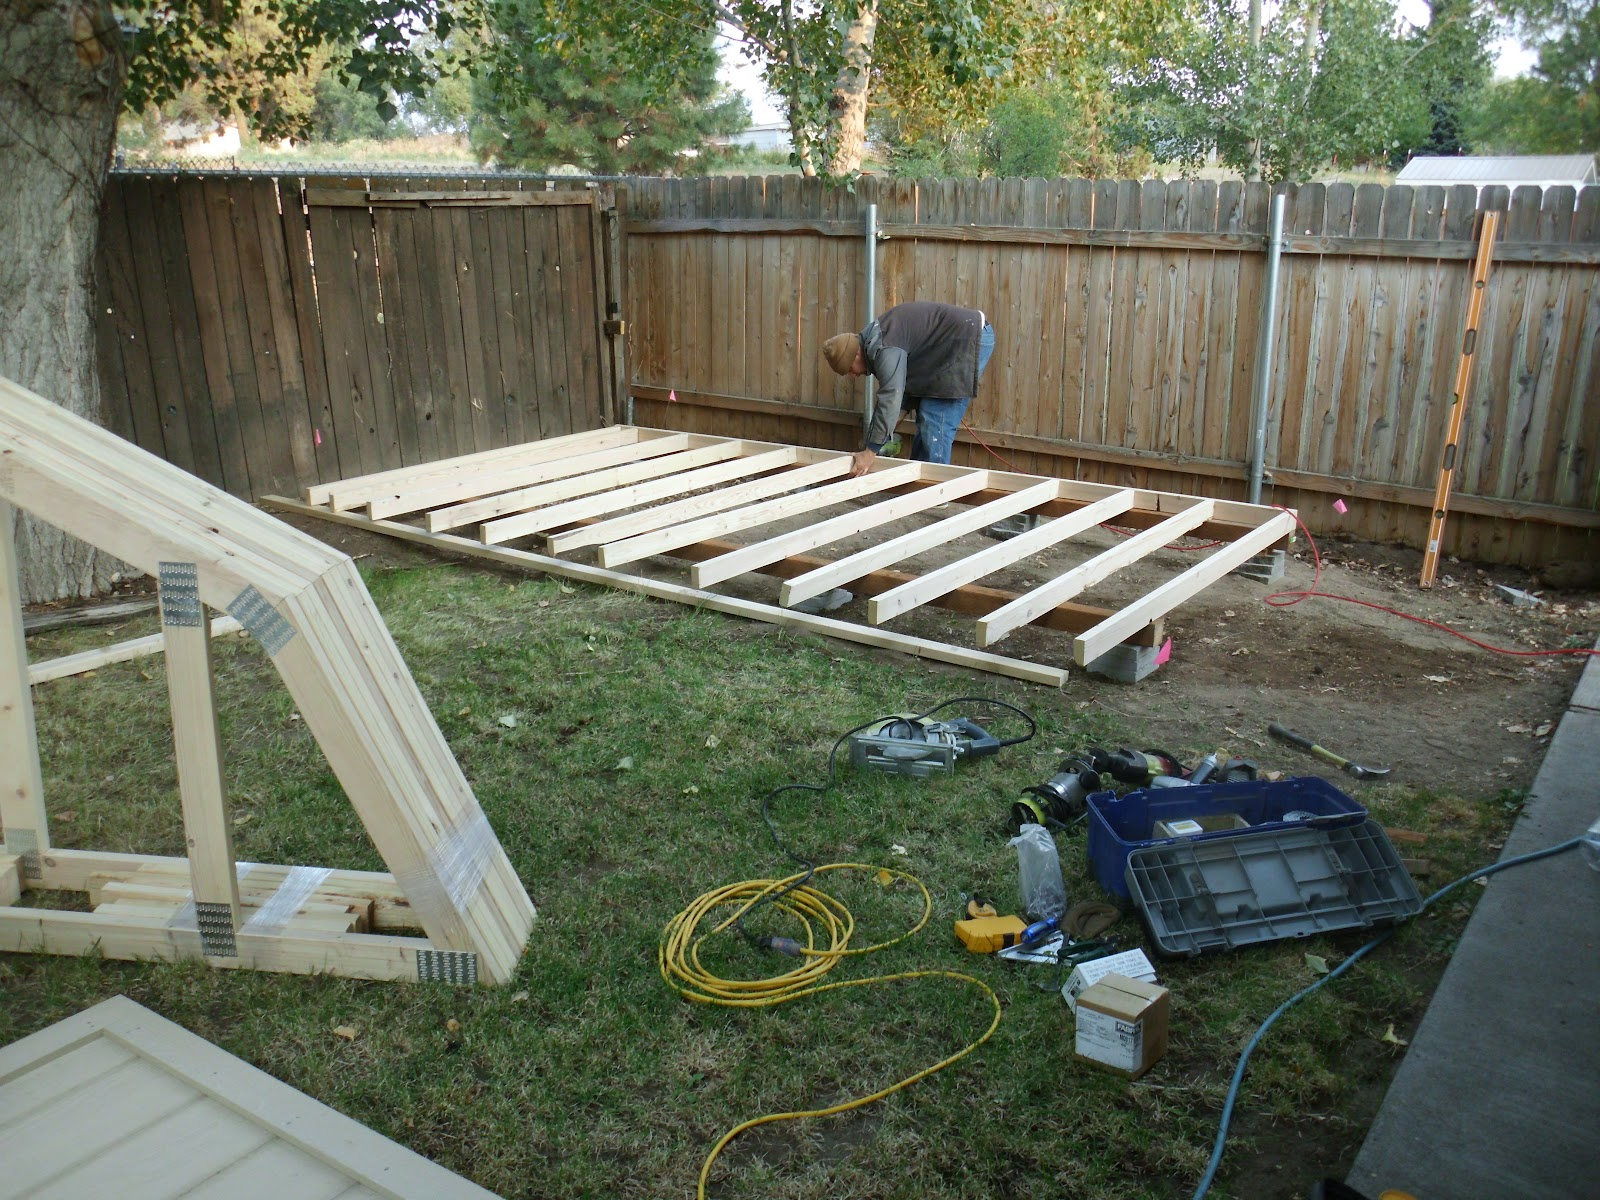 leveling and putting floor on skids everything is in the backyard